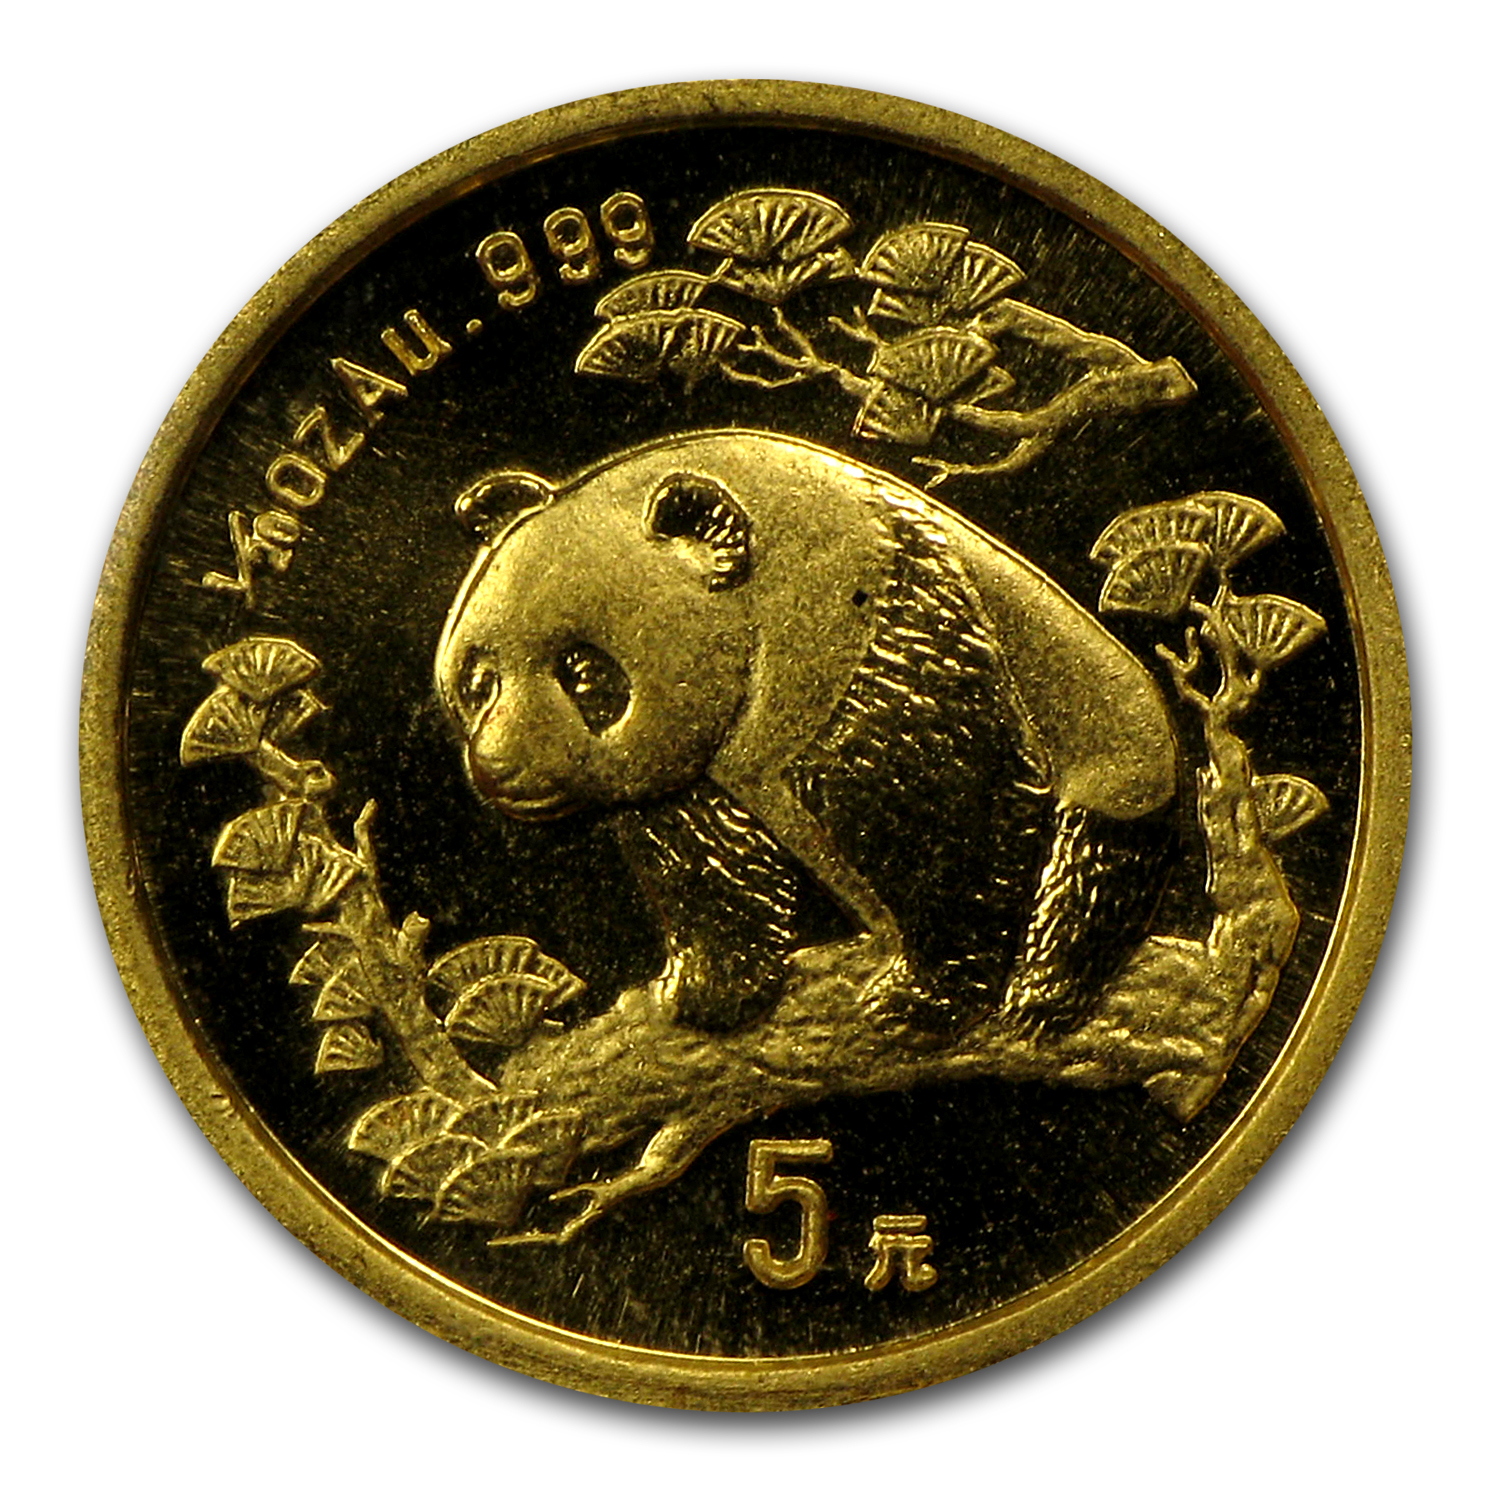 1997 (1/20 oz) Gold Chinese Pandas - Small Date (Sealed)